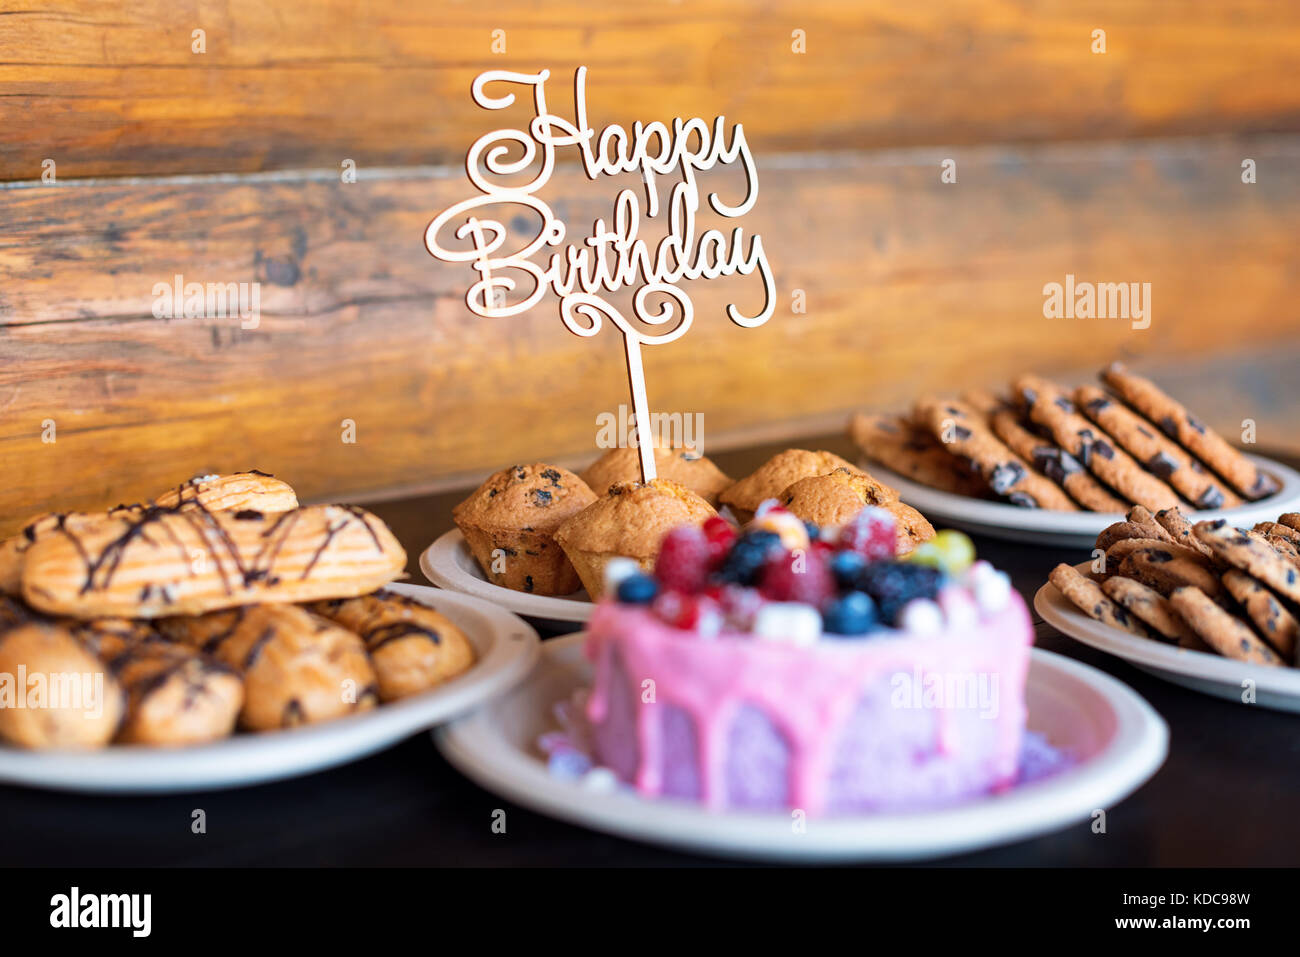 Birthday Cake And Muffins With Wooden Greeting Sign On Rustic Stock